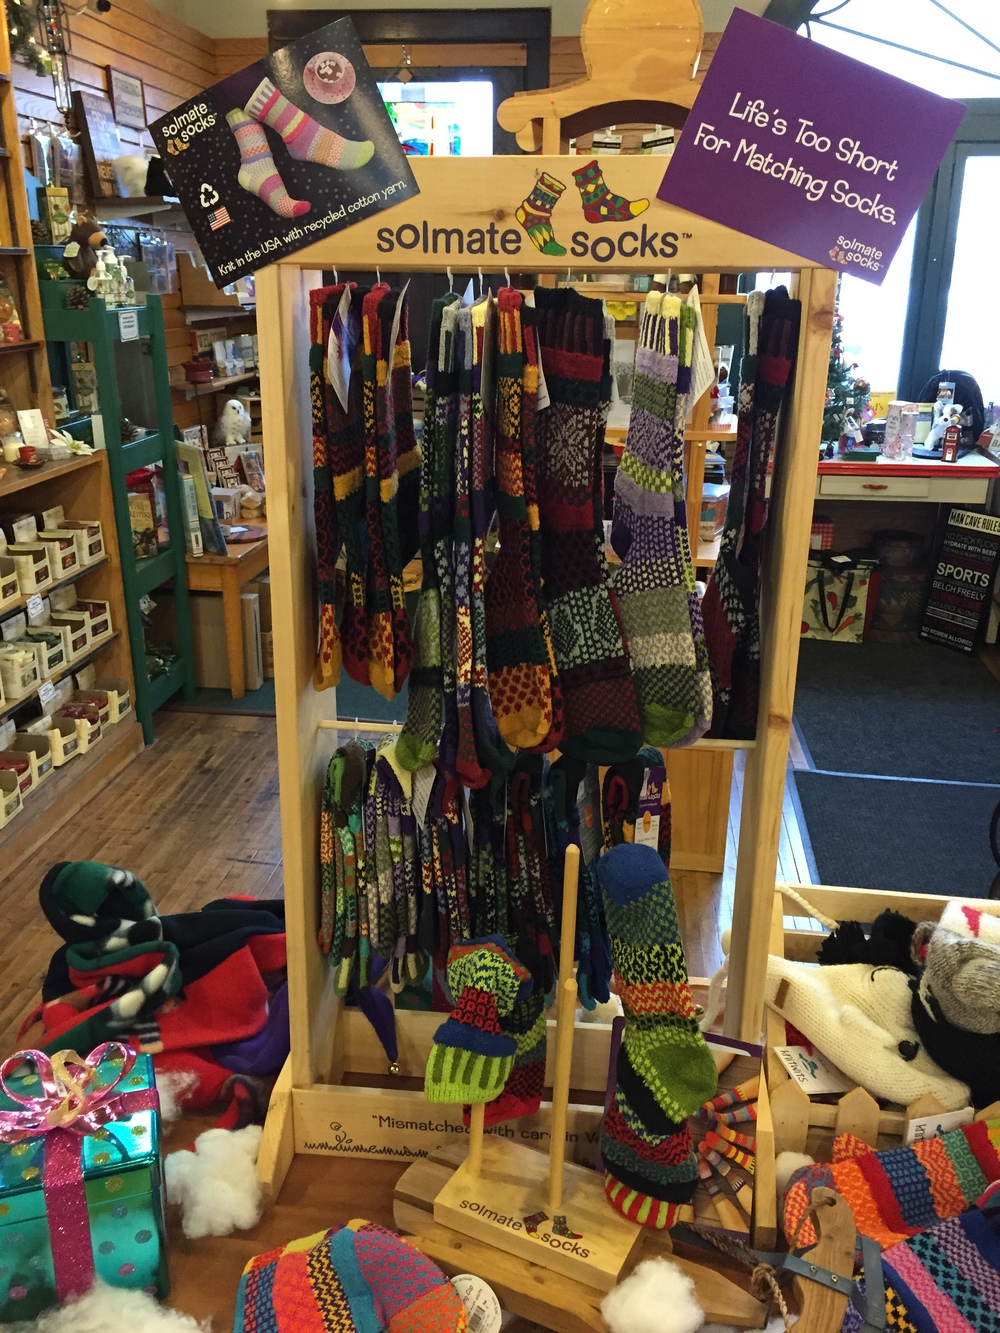 One of the ways our store is unique is we search for the most unique roducts made in the USA. Soulmate socks are desined, knit, and made with recycled material. Come in to shop local and support products made in the U.S.A.!